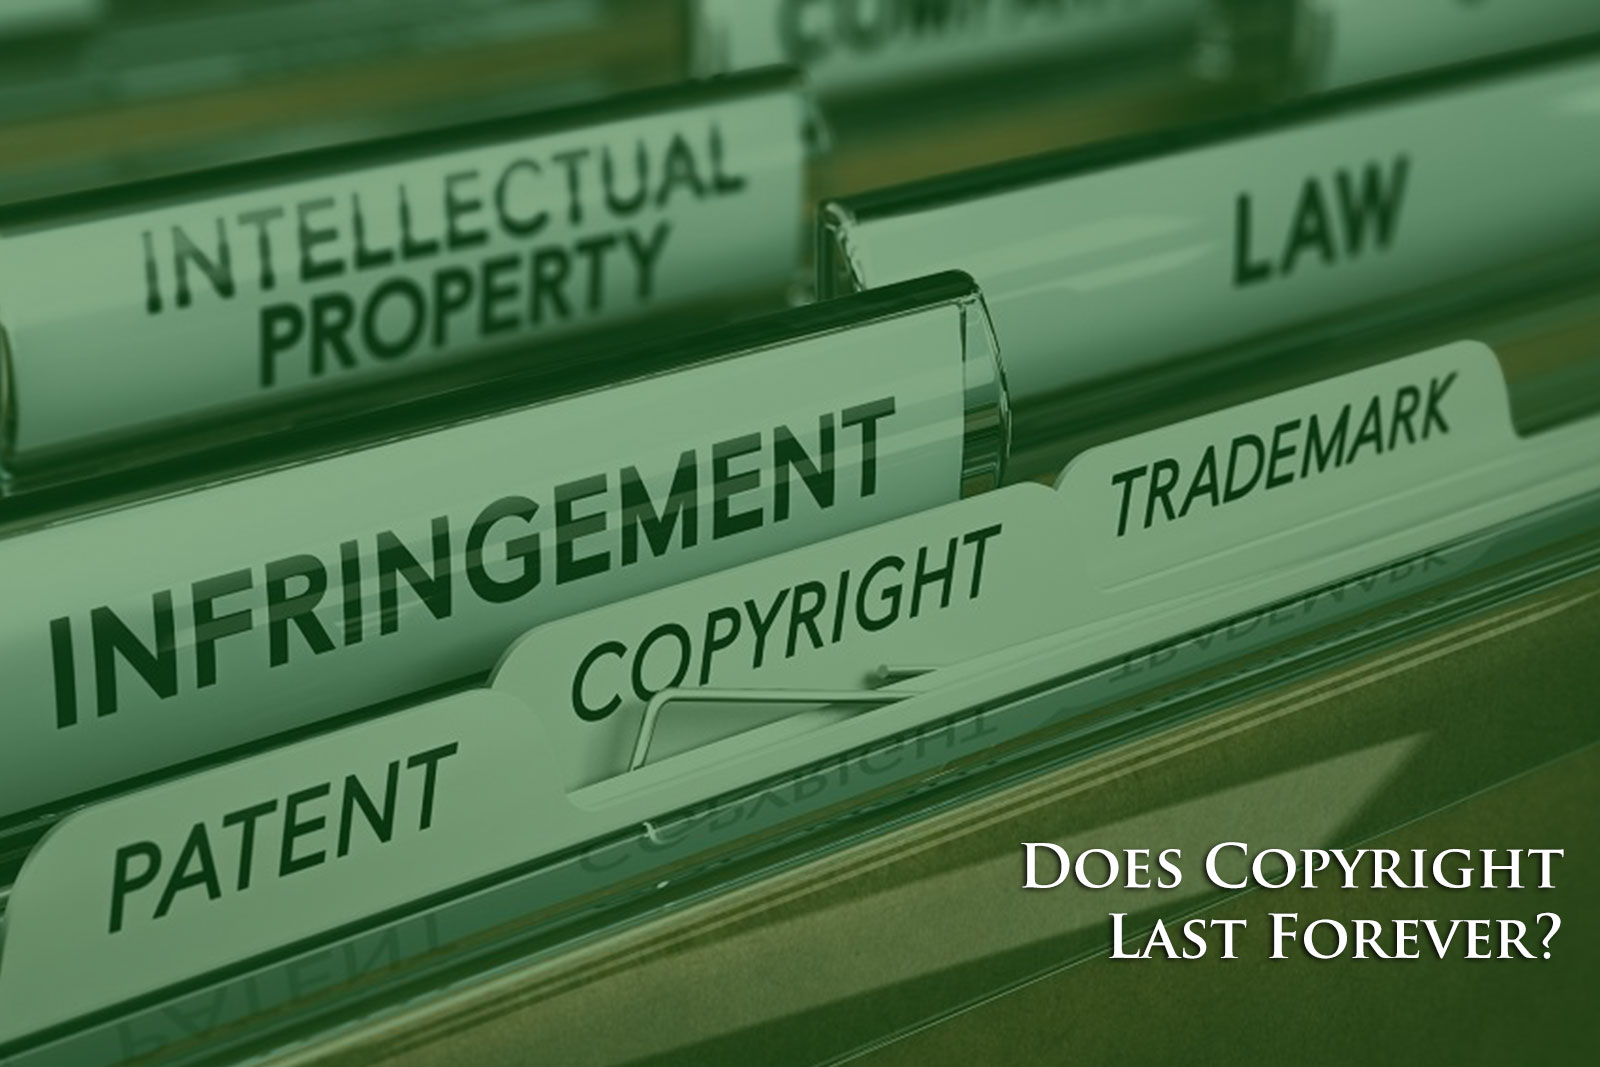 Does Copyright Last Forever?